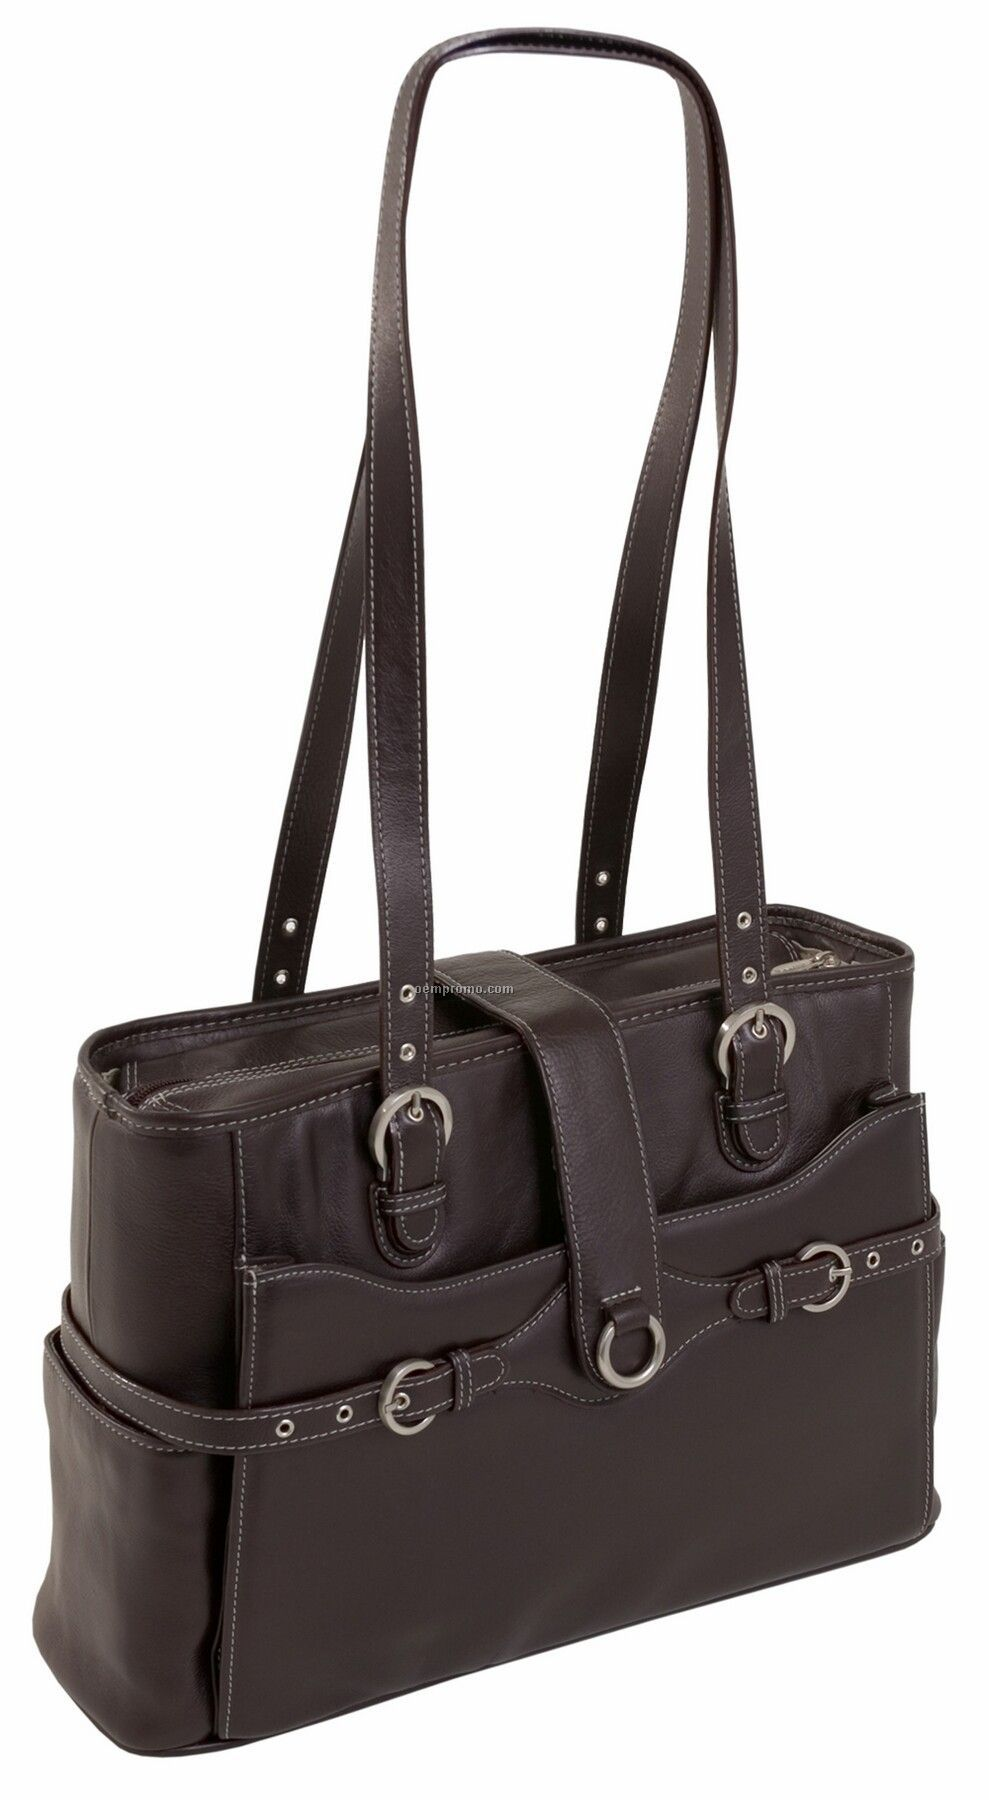 Fratti Leather Laptop Tote - Chocolate Brown